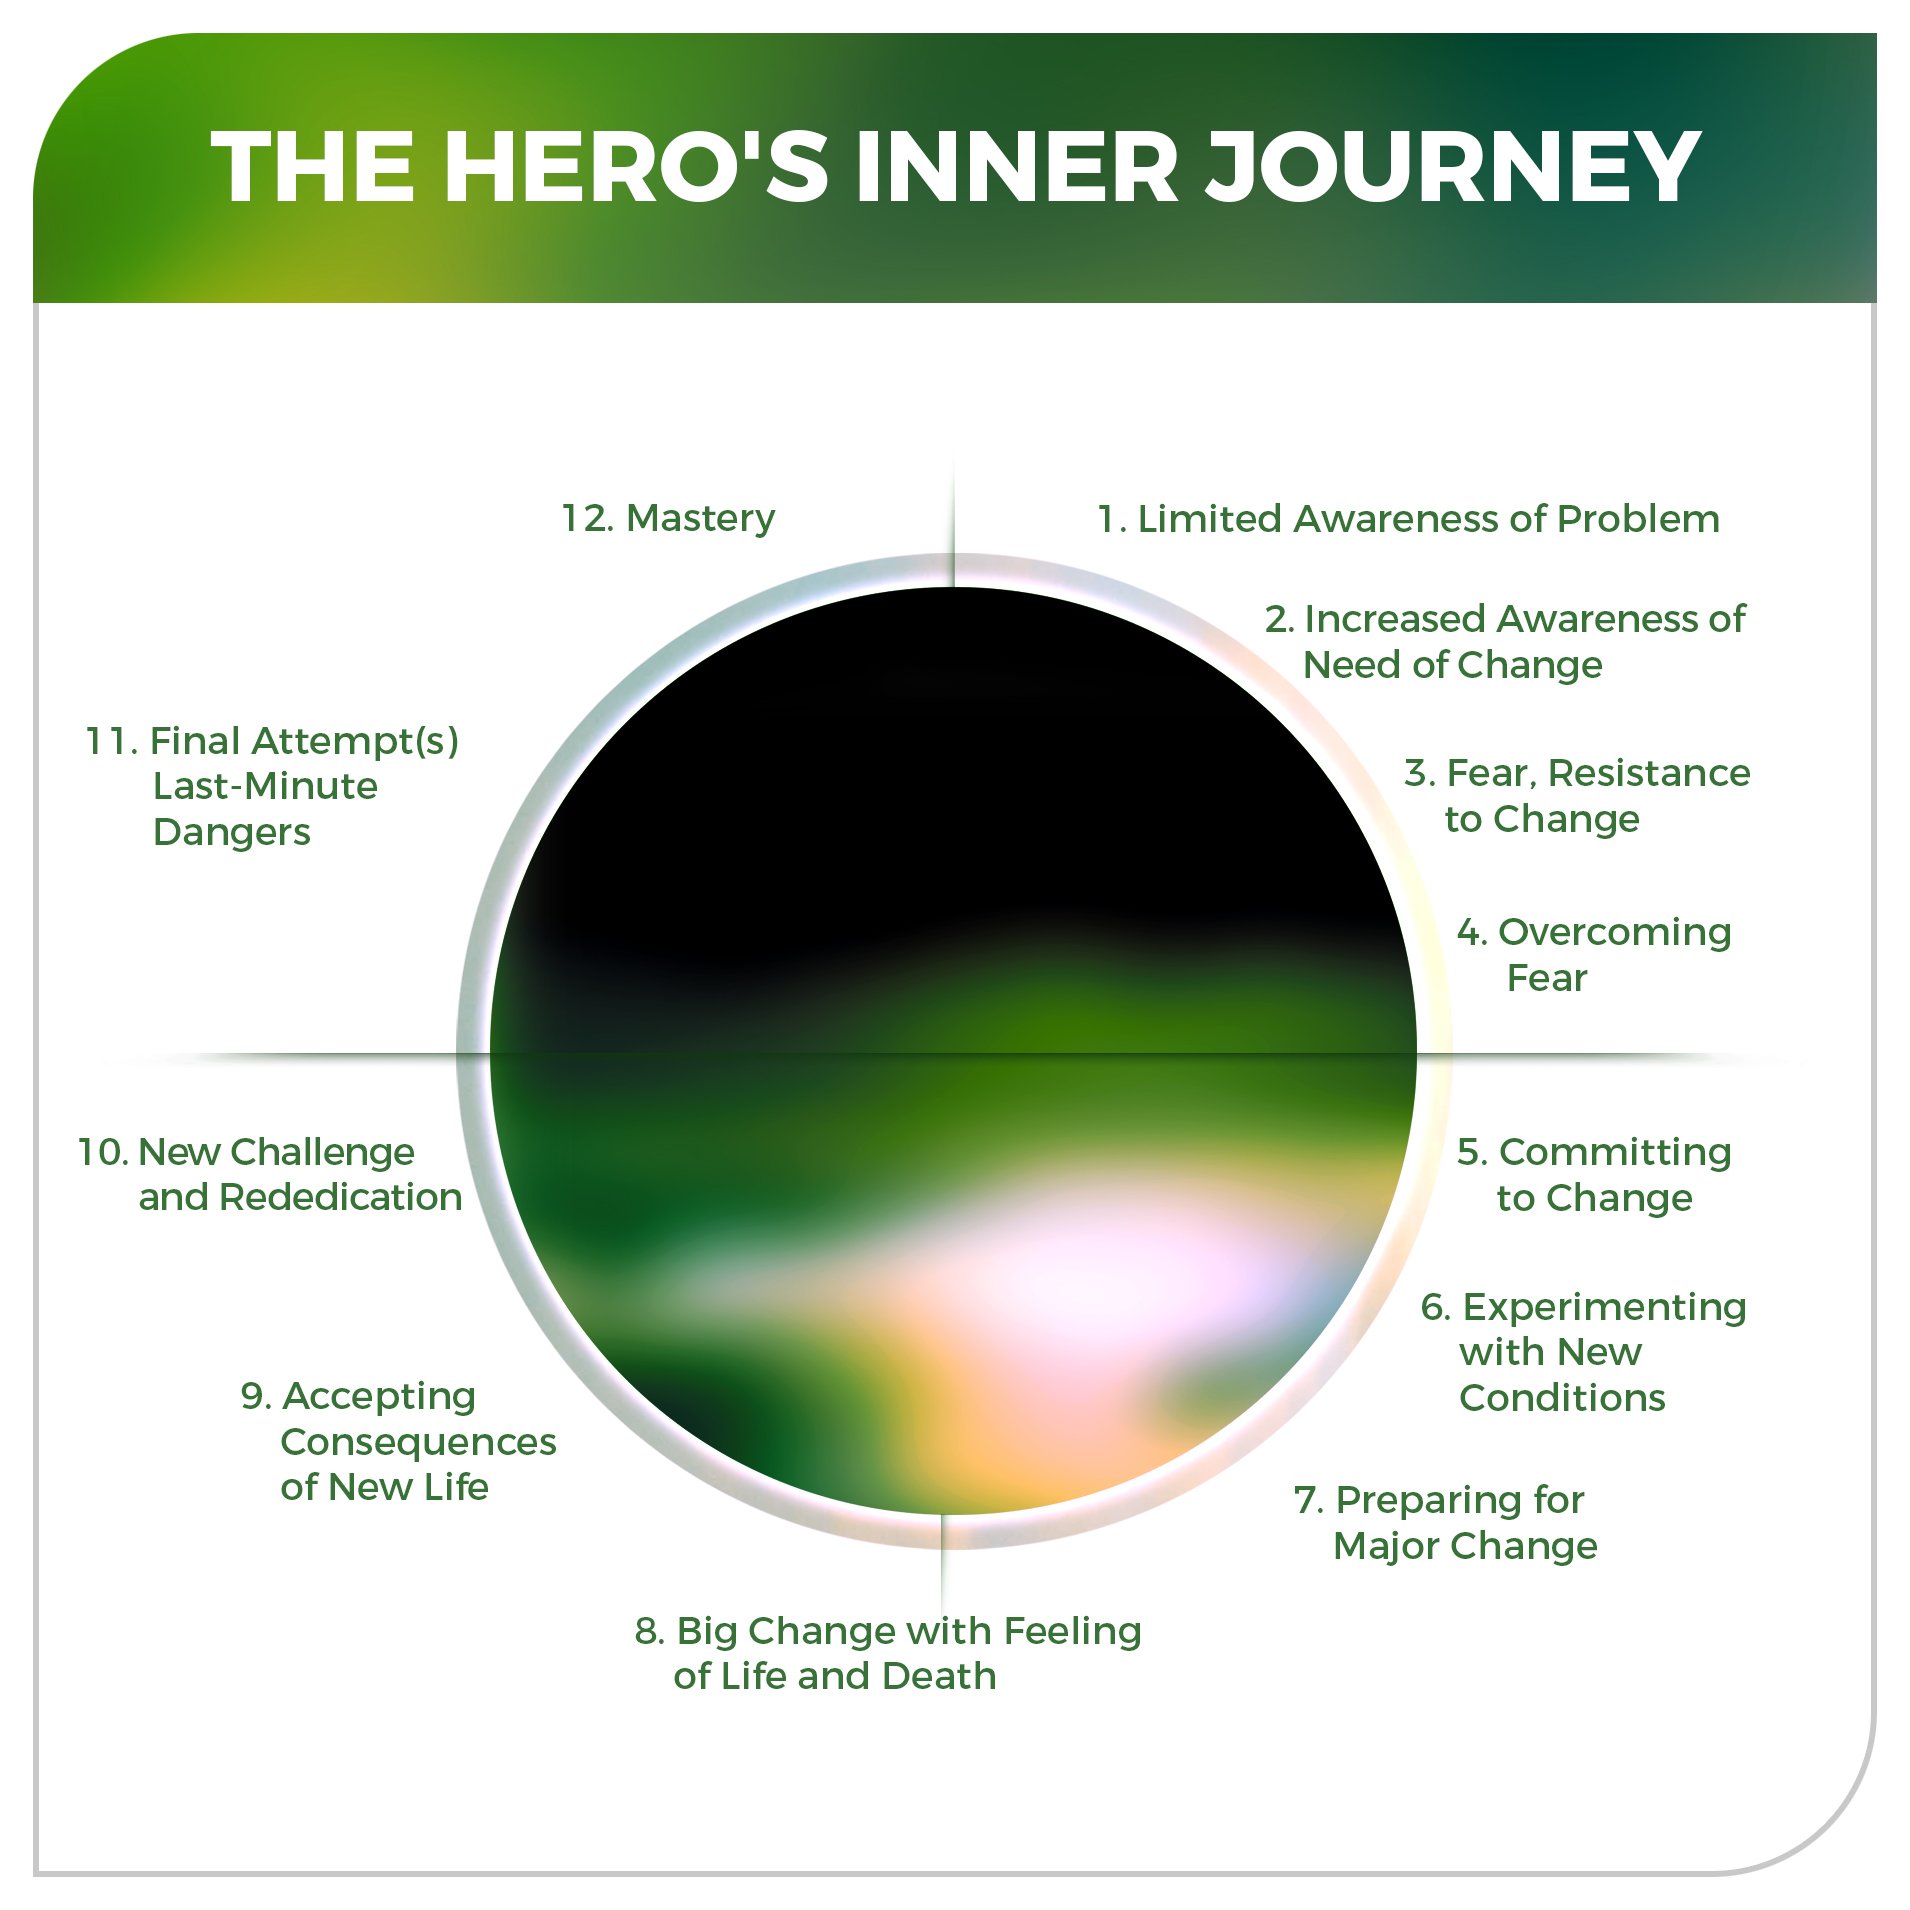 The Hero's Inner Journey for personal development